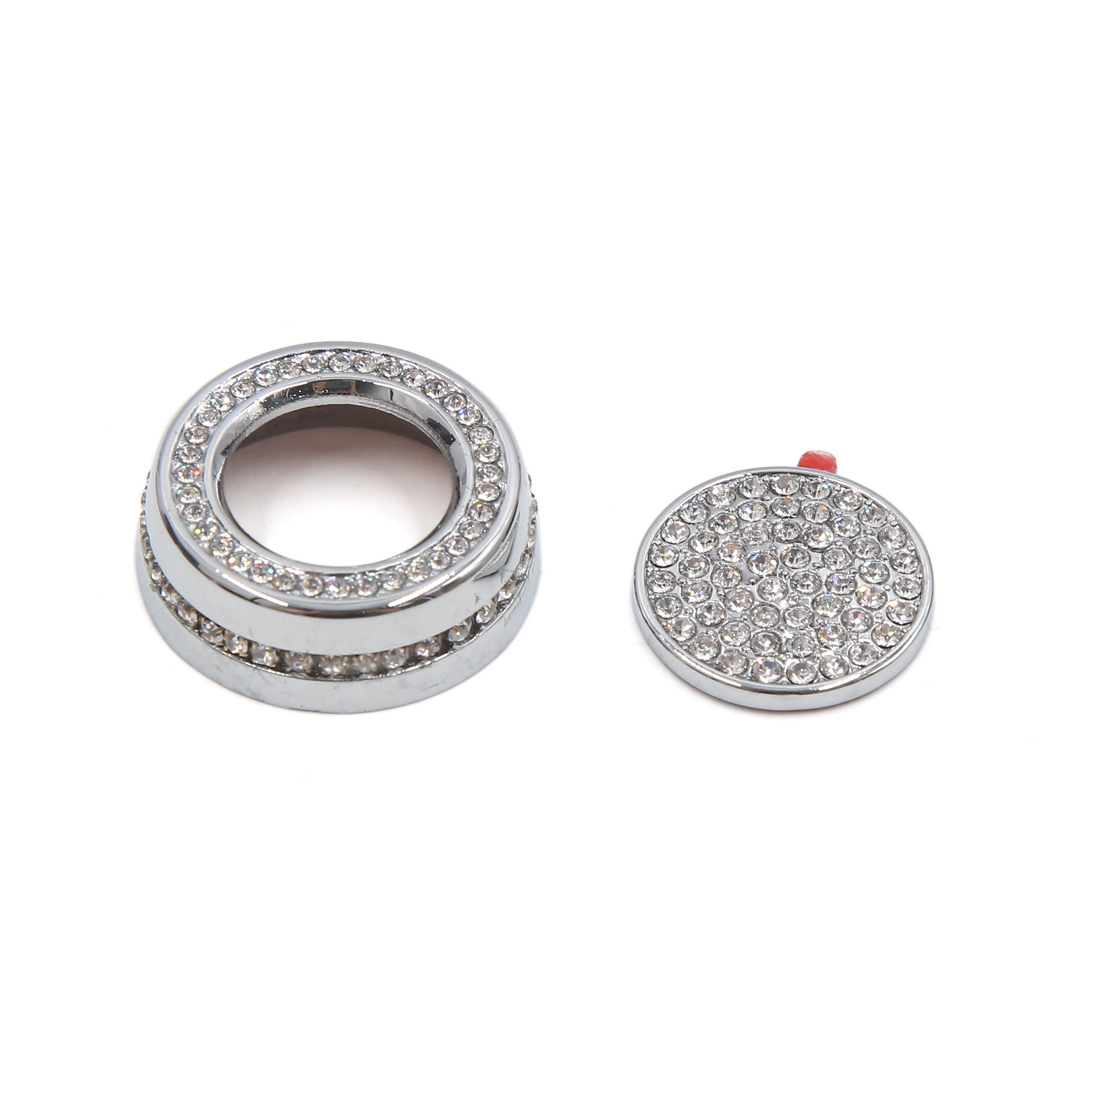 2Pcs Silver Tone Car Air Condition Start Button Decorative Ring for Juguar